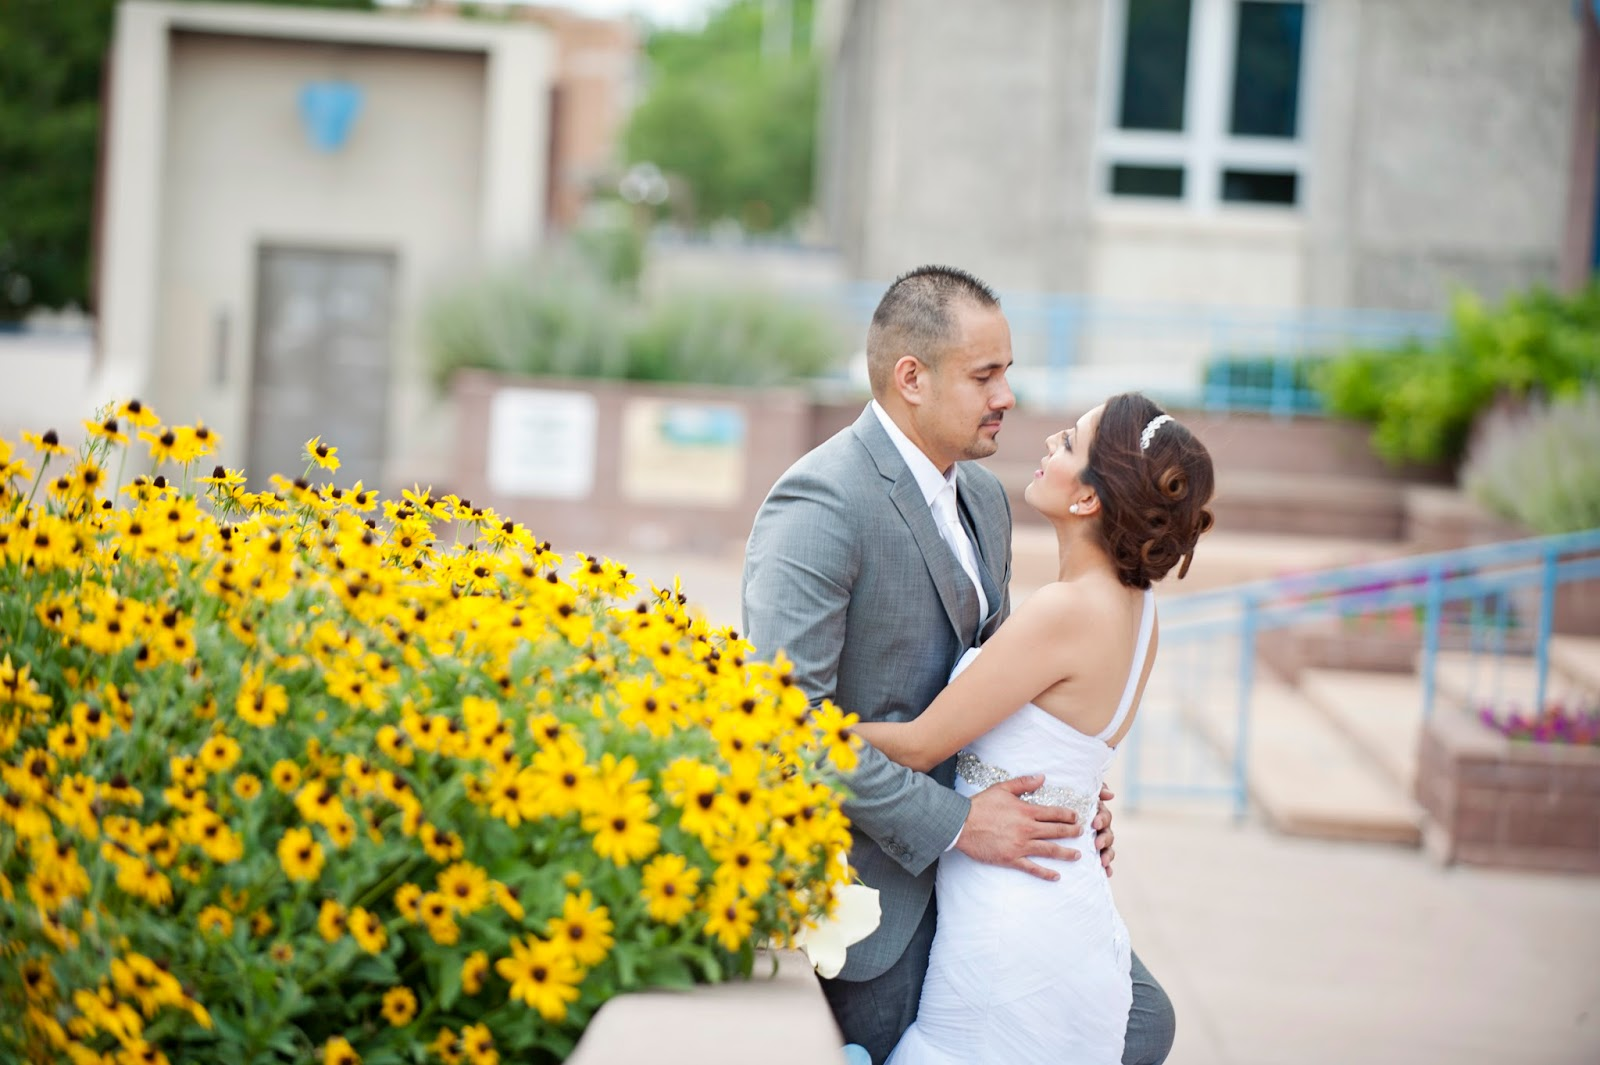 Albuquerque Wedding, New Mexico Wedding, Albuquerque Convention Center wedding, wedding photographers in albuquerque, new meixco wedding photographers, albuquerque wedding photographers, Albuquerque wedding photographer, wedding photographers in albuquerque